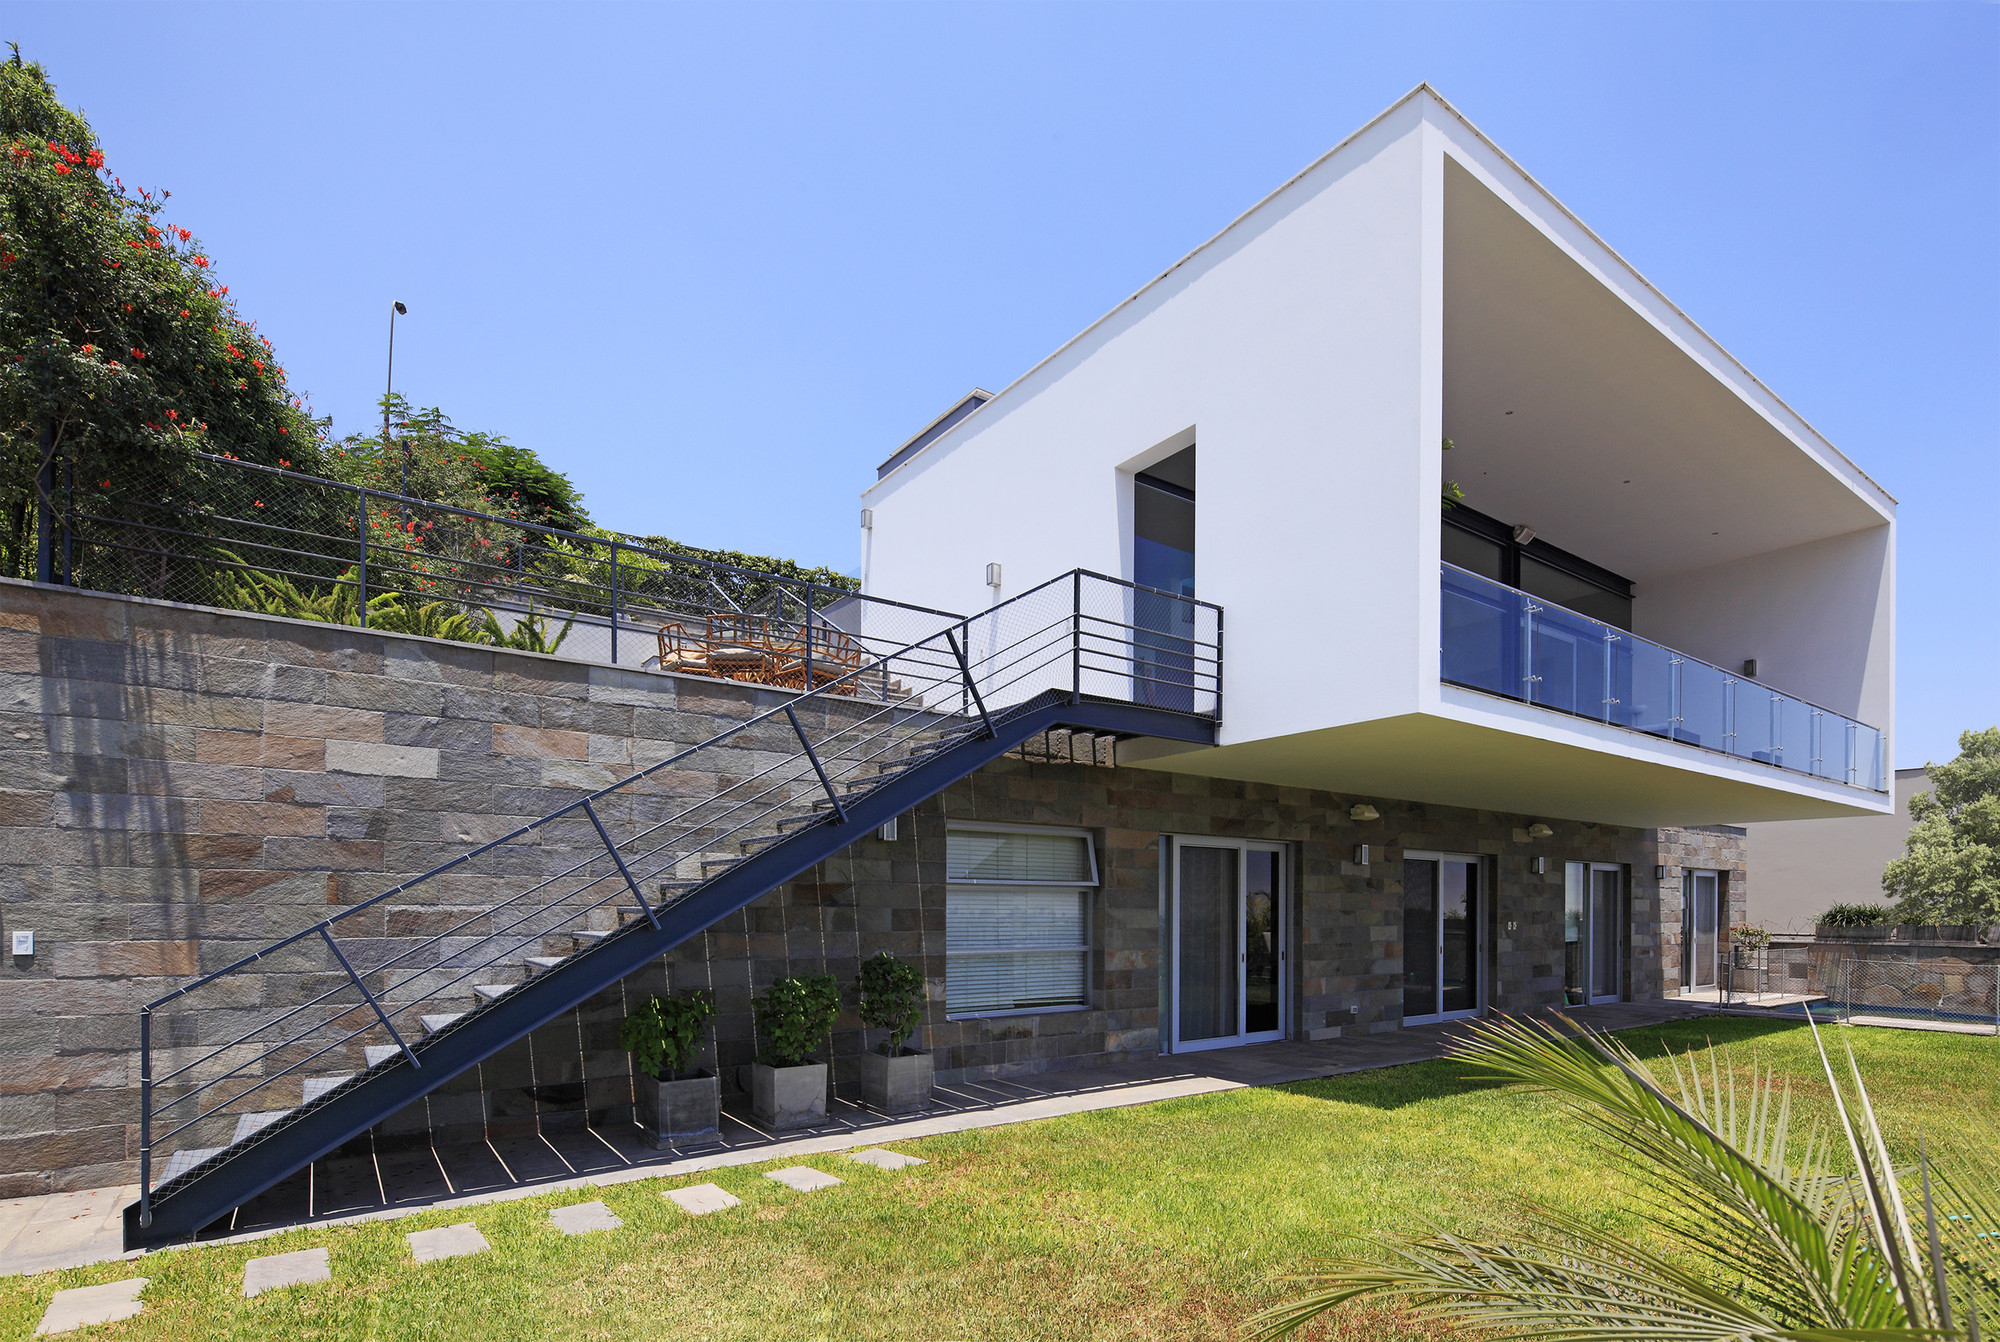 Gallery of b house domenack arquitectos 1 B house